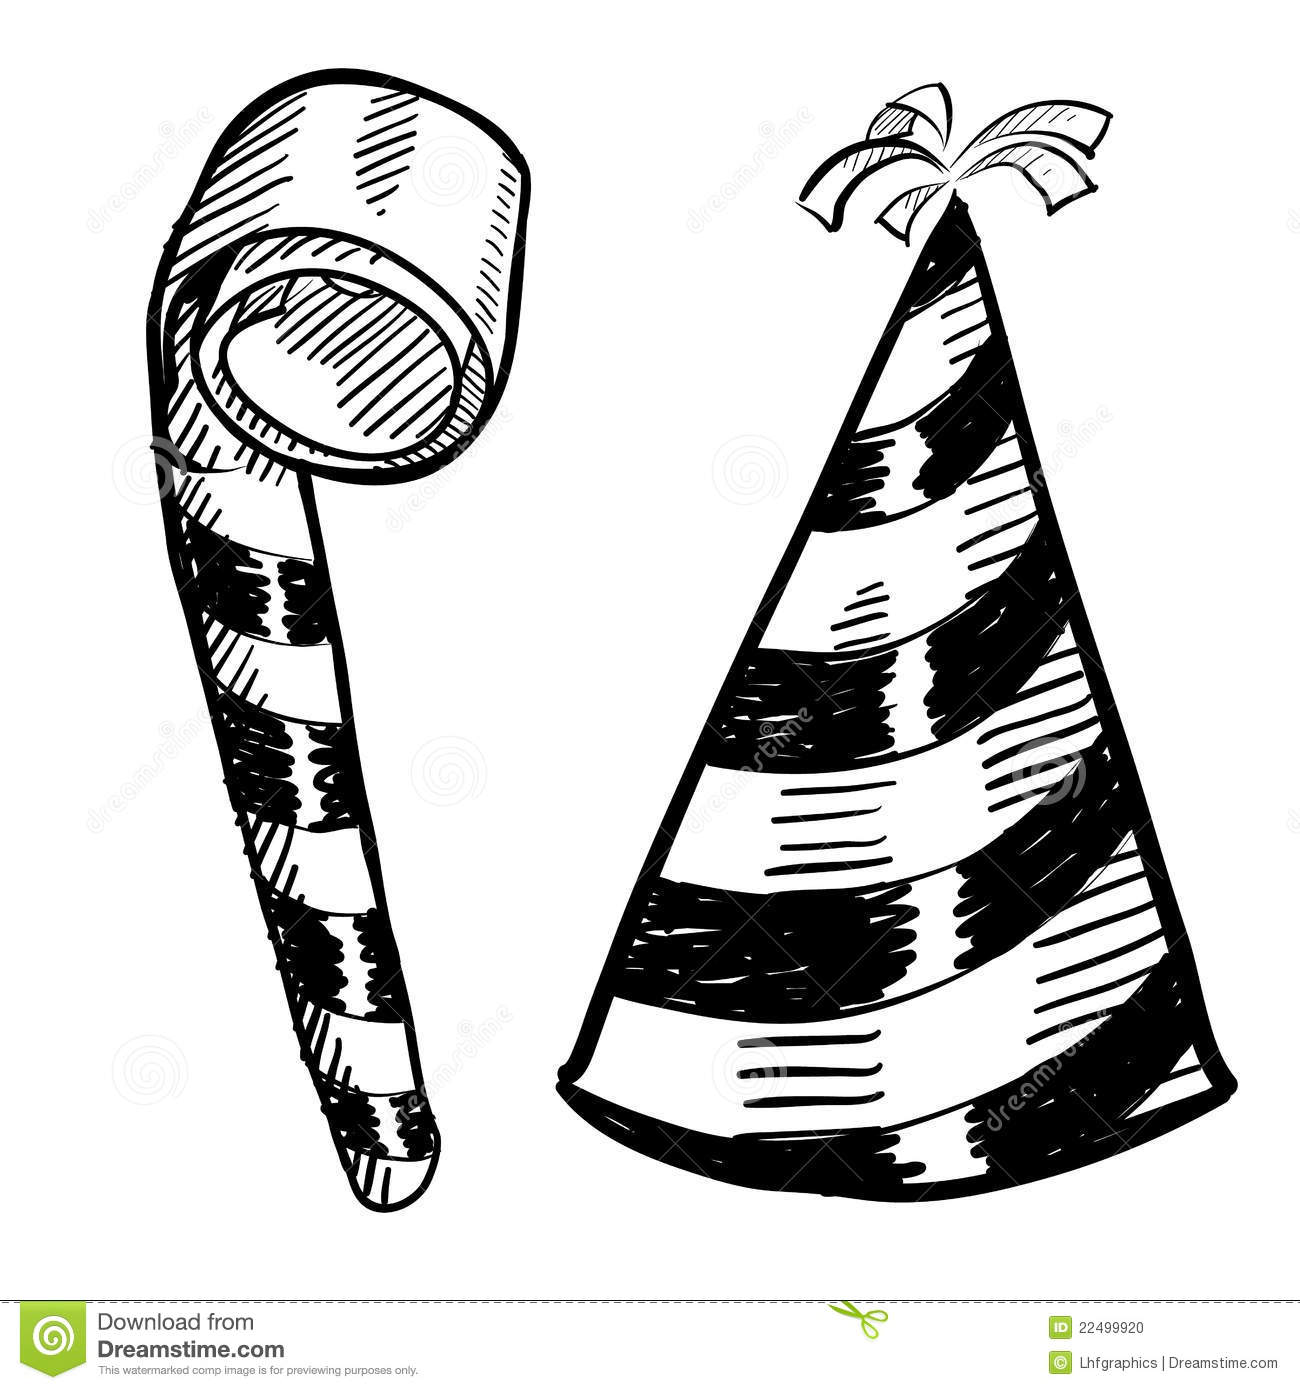 New years party hat clip art